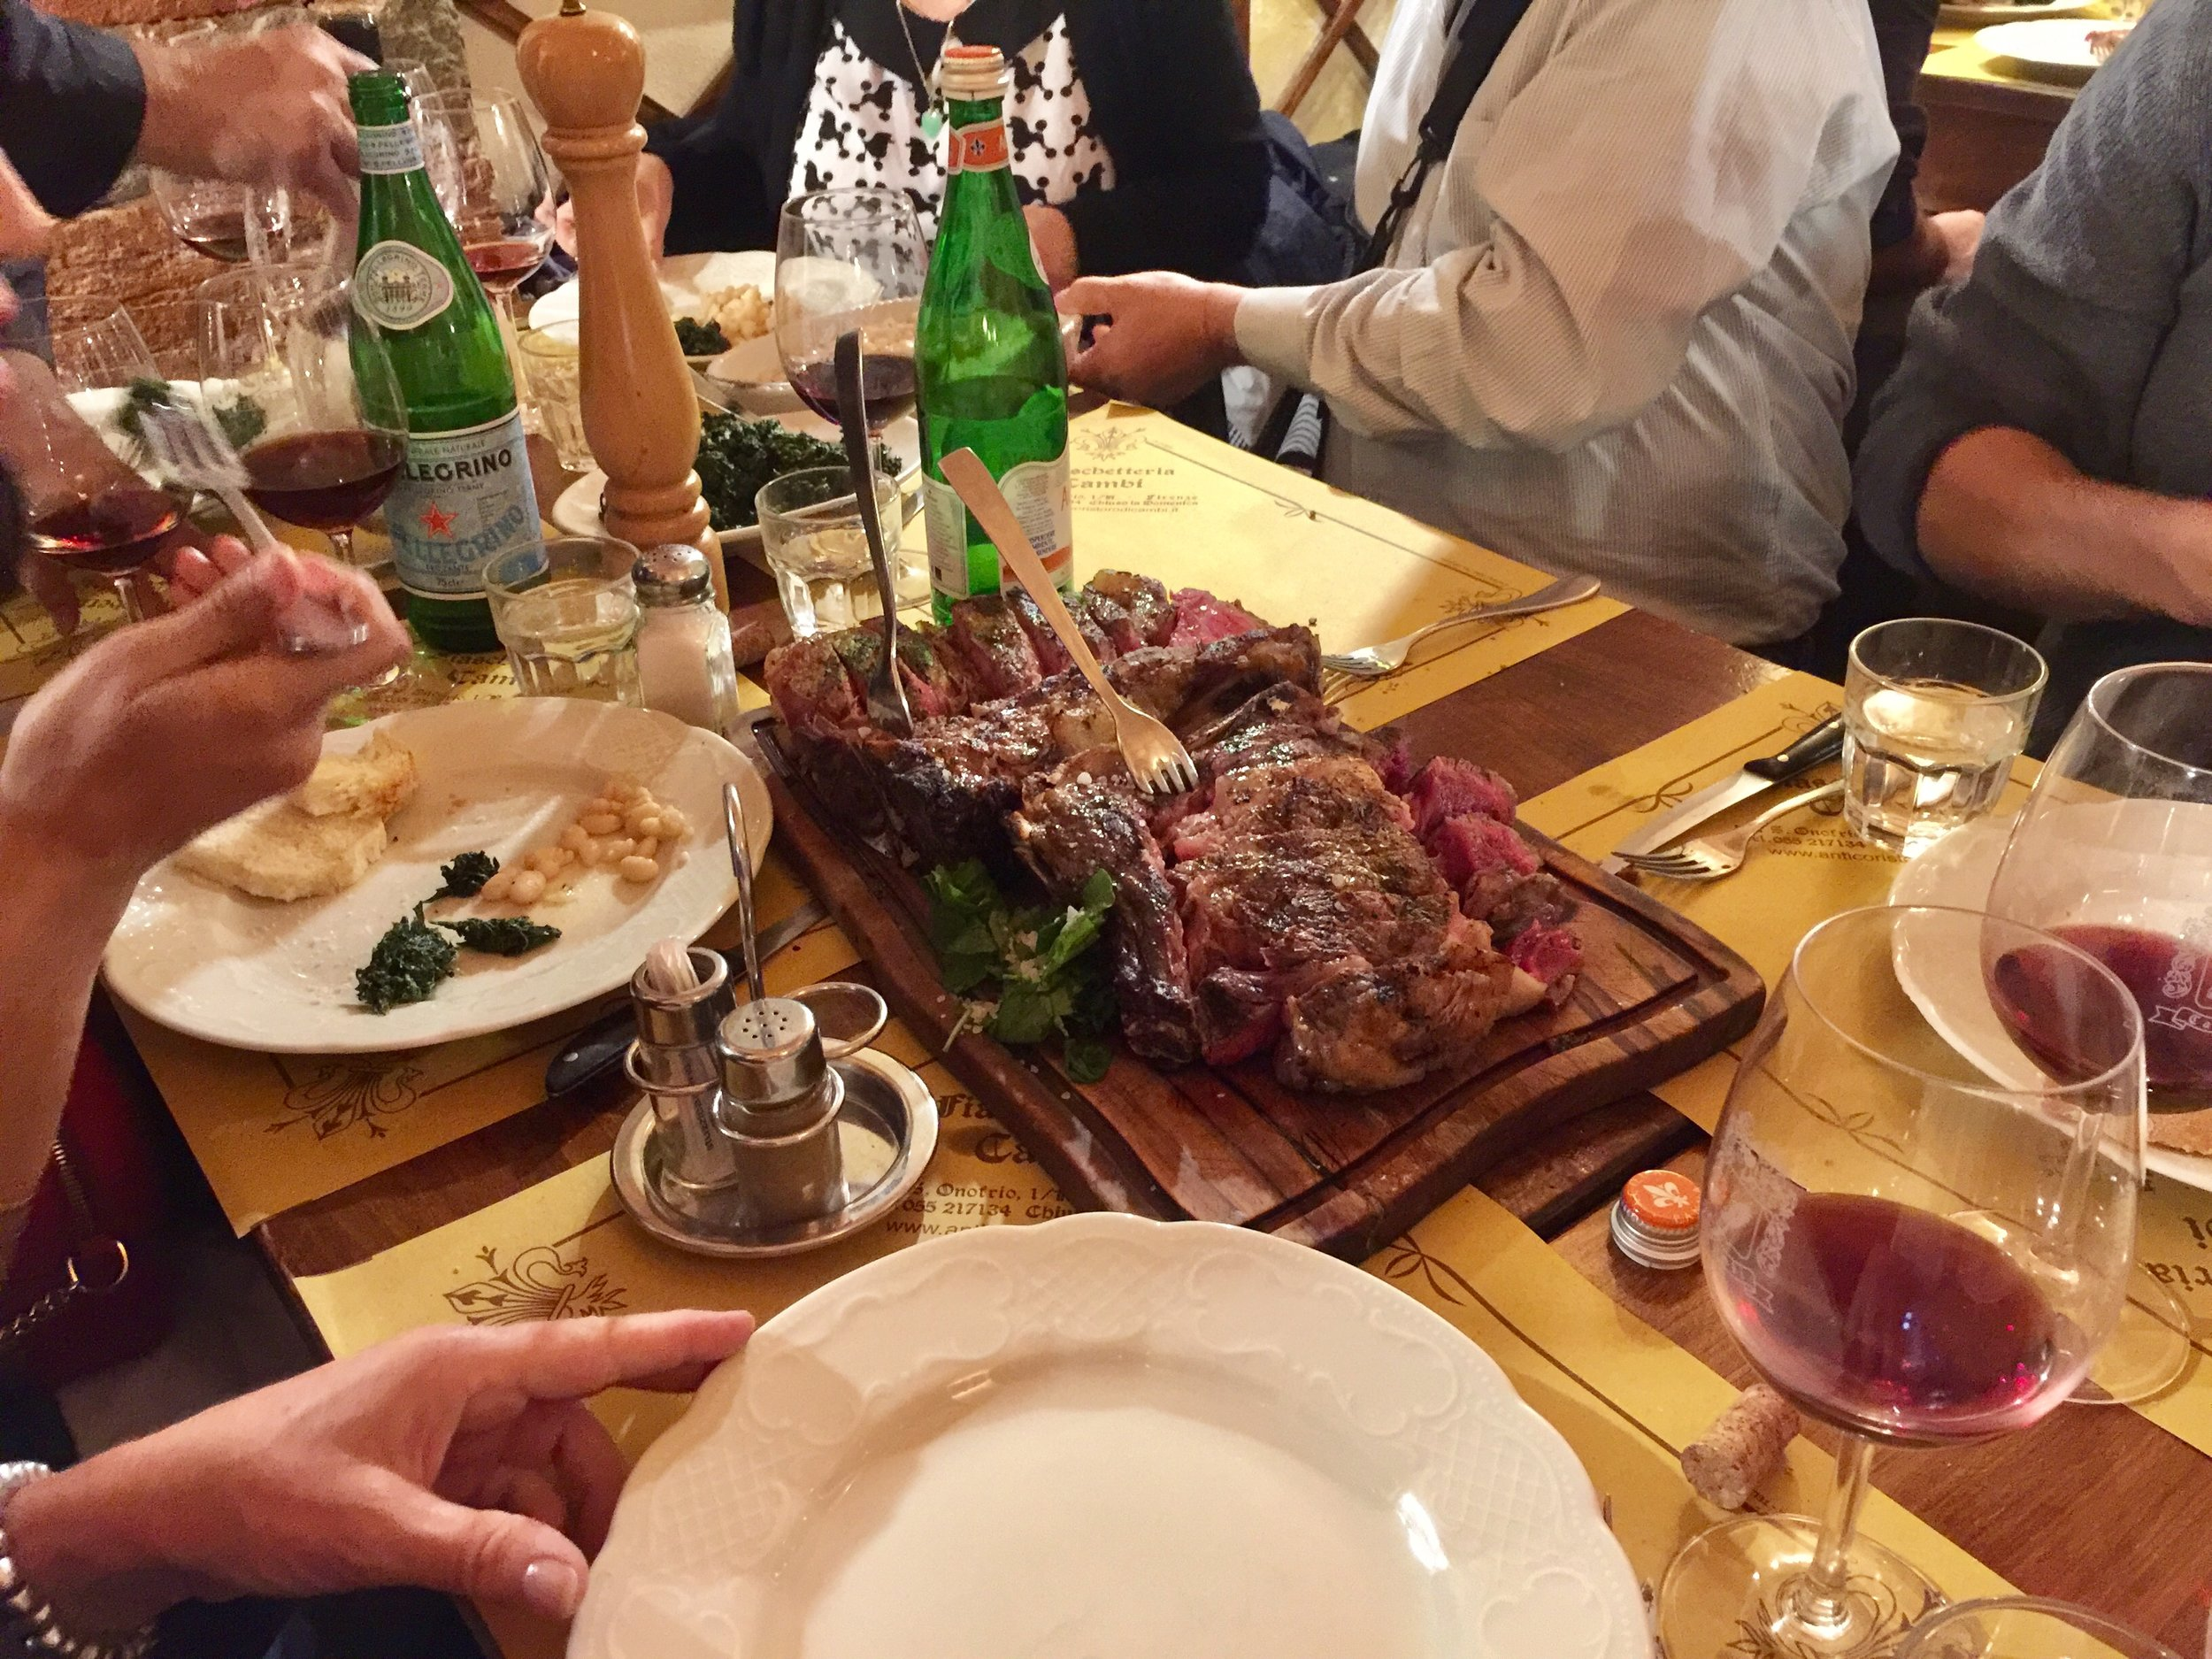 Enjoying bistecca alla Fiorentina (the mother of all steaks) at All'Antico Ristoro di Cambi in Florence on the first night.